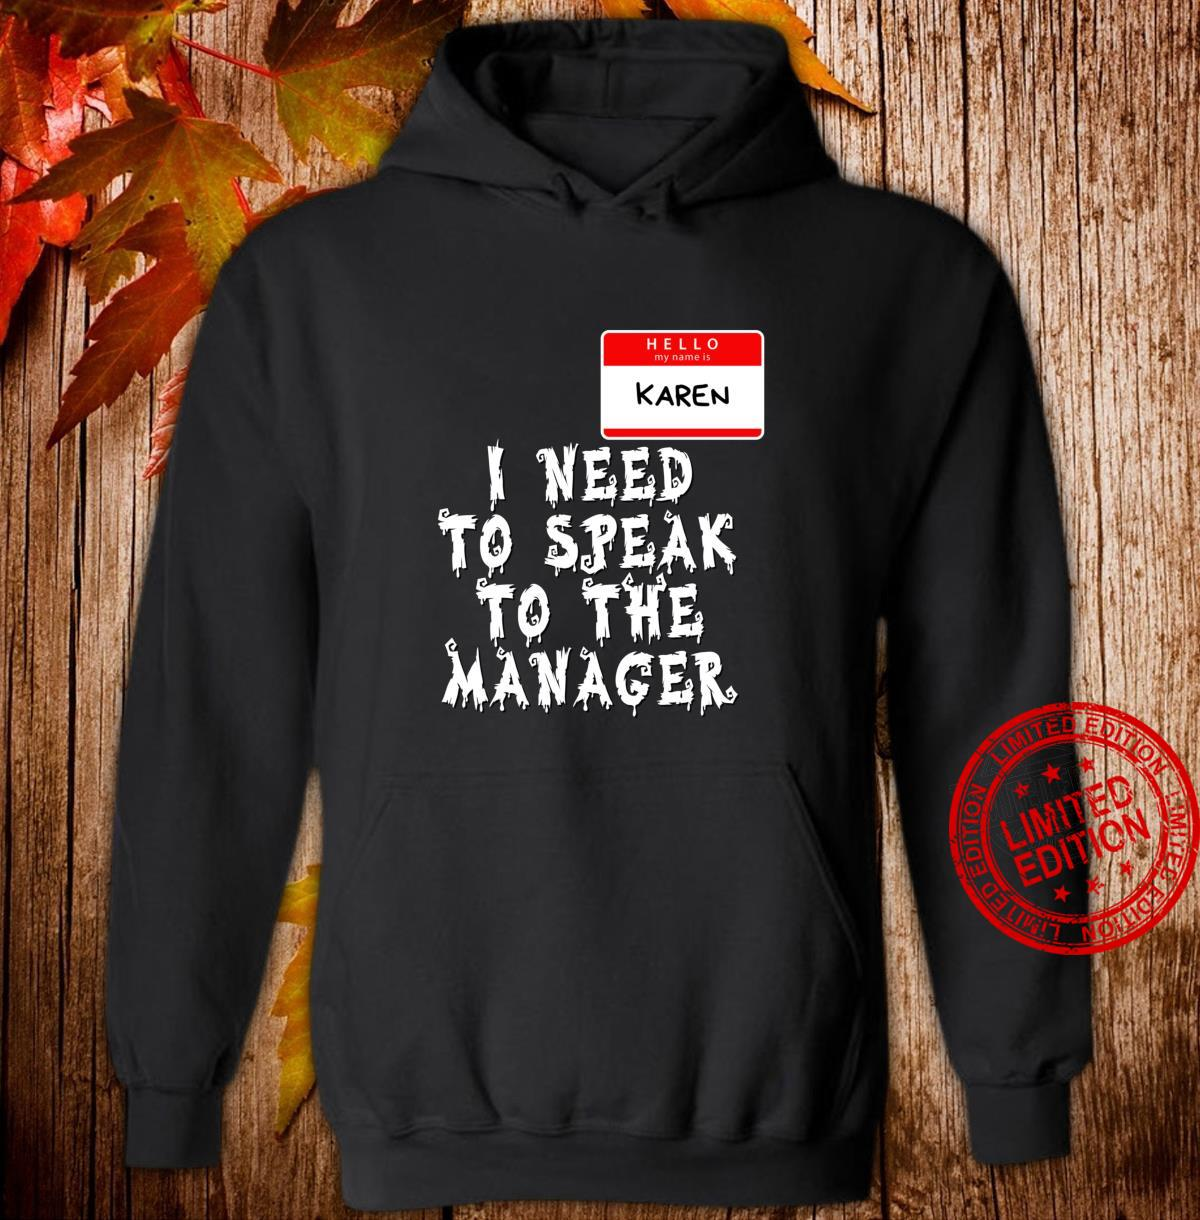 My name is Karen. Need to Speak to Manager Halloween Costume Shirt hoodie